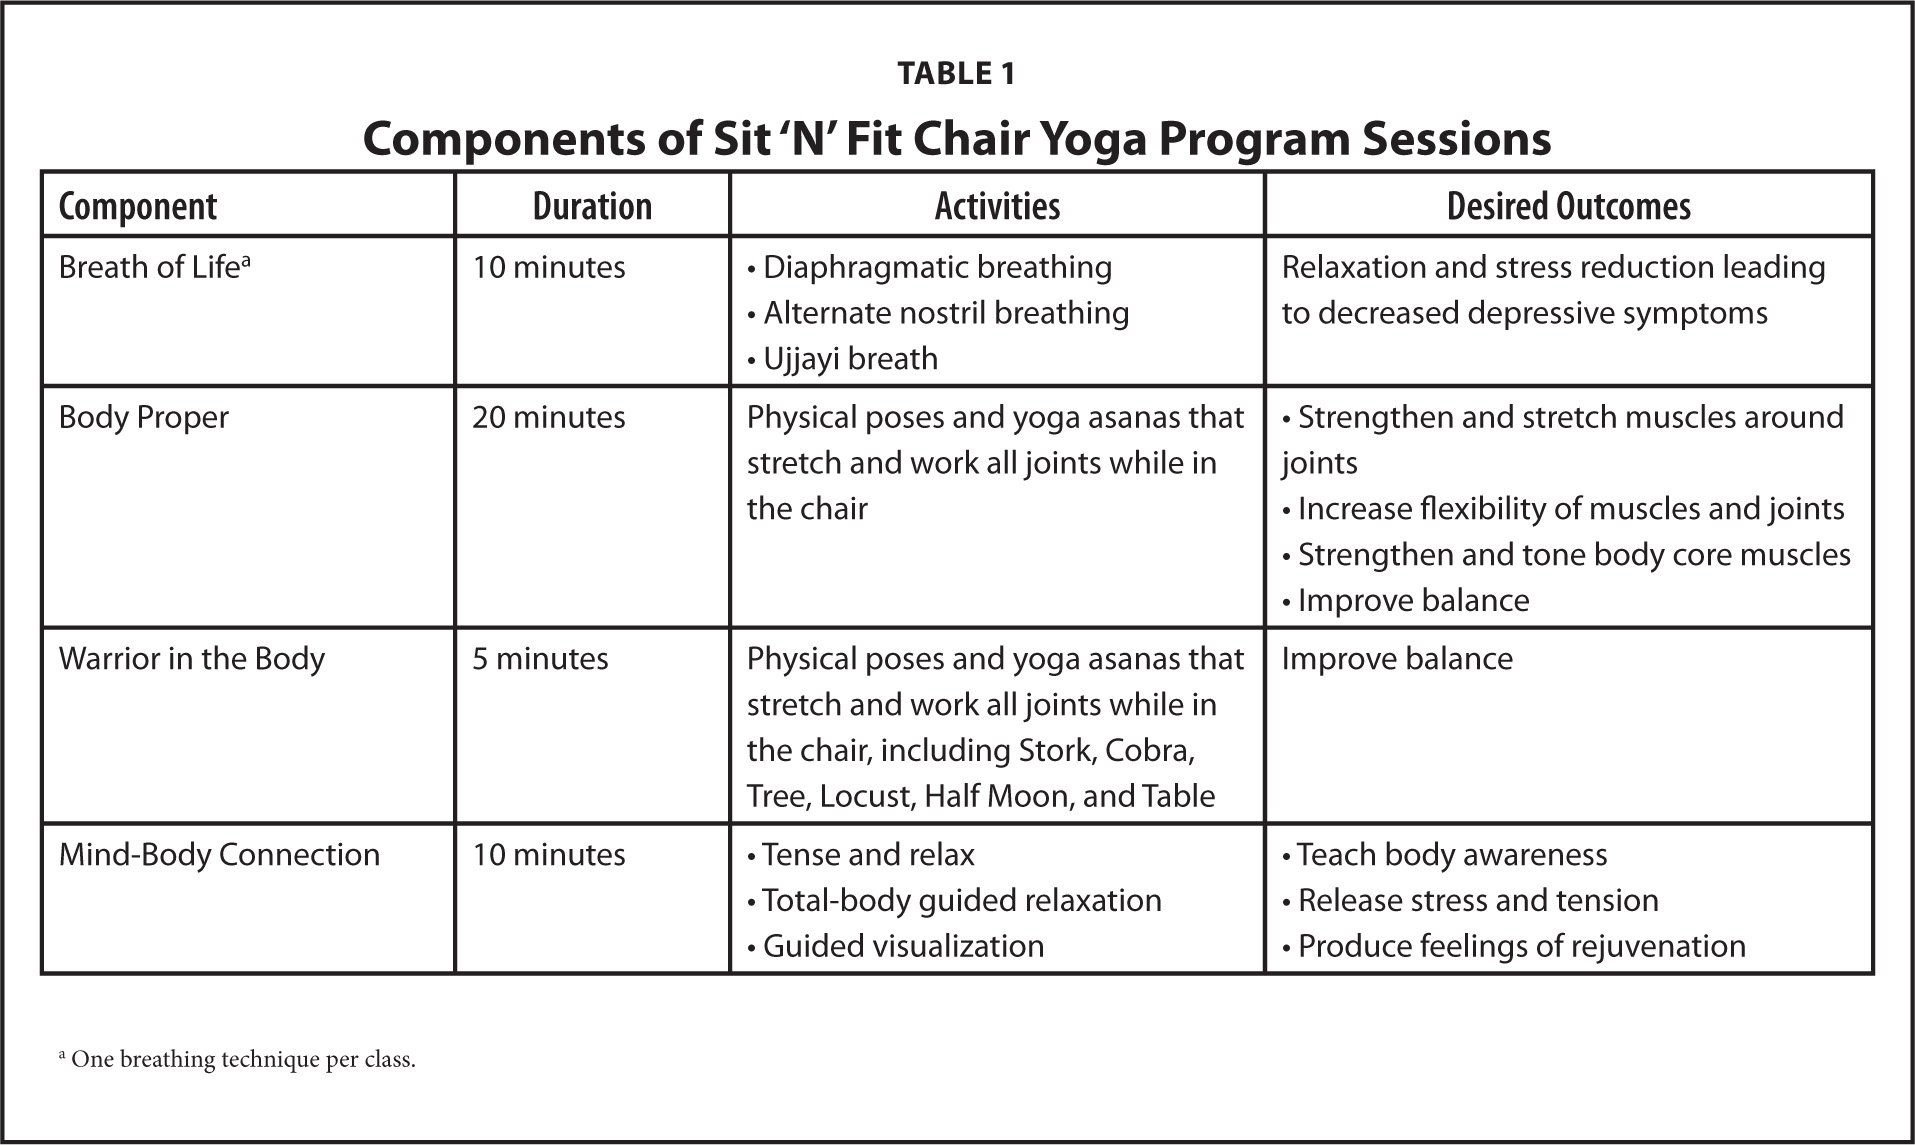 Components of Sit 'N' Fit Chair Yoga Program Sessions